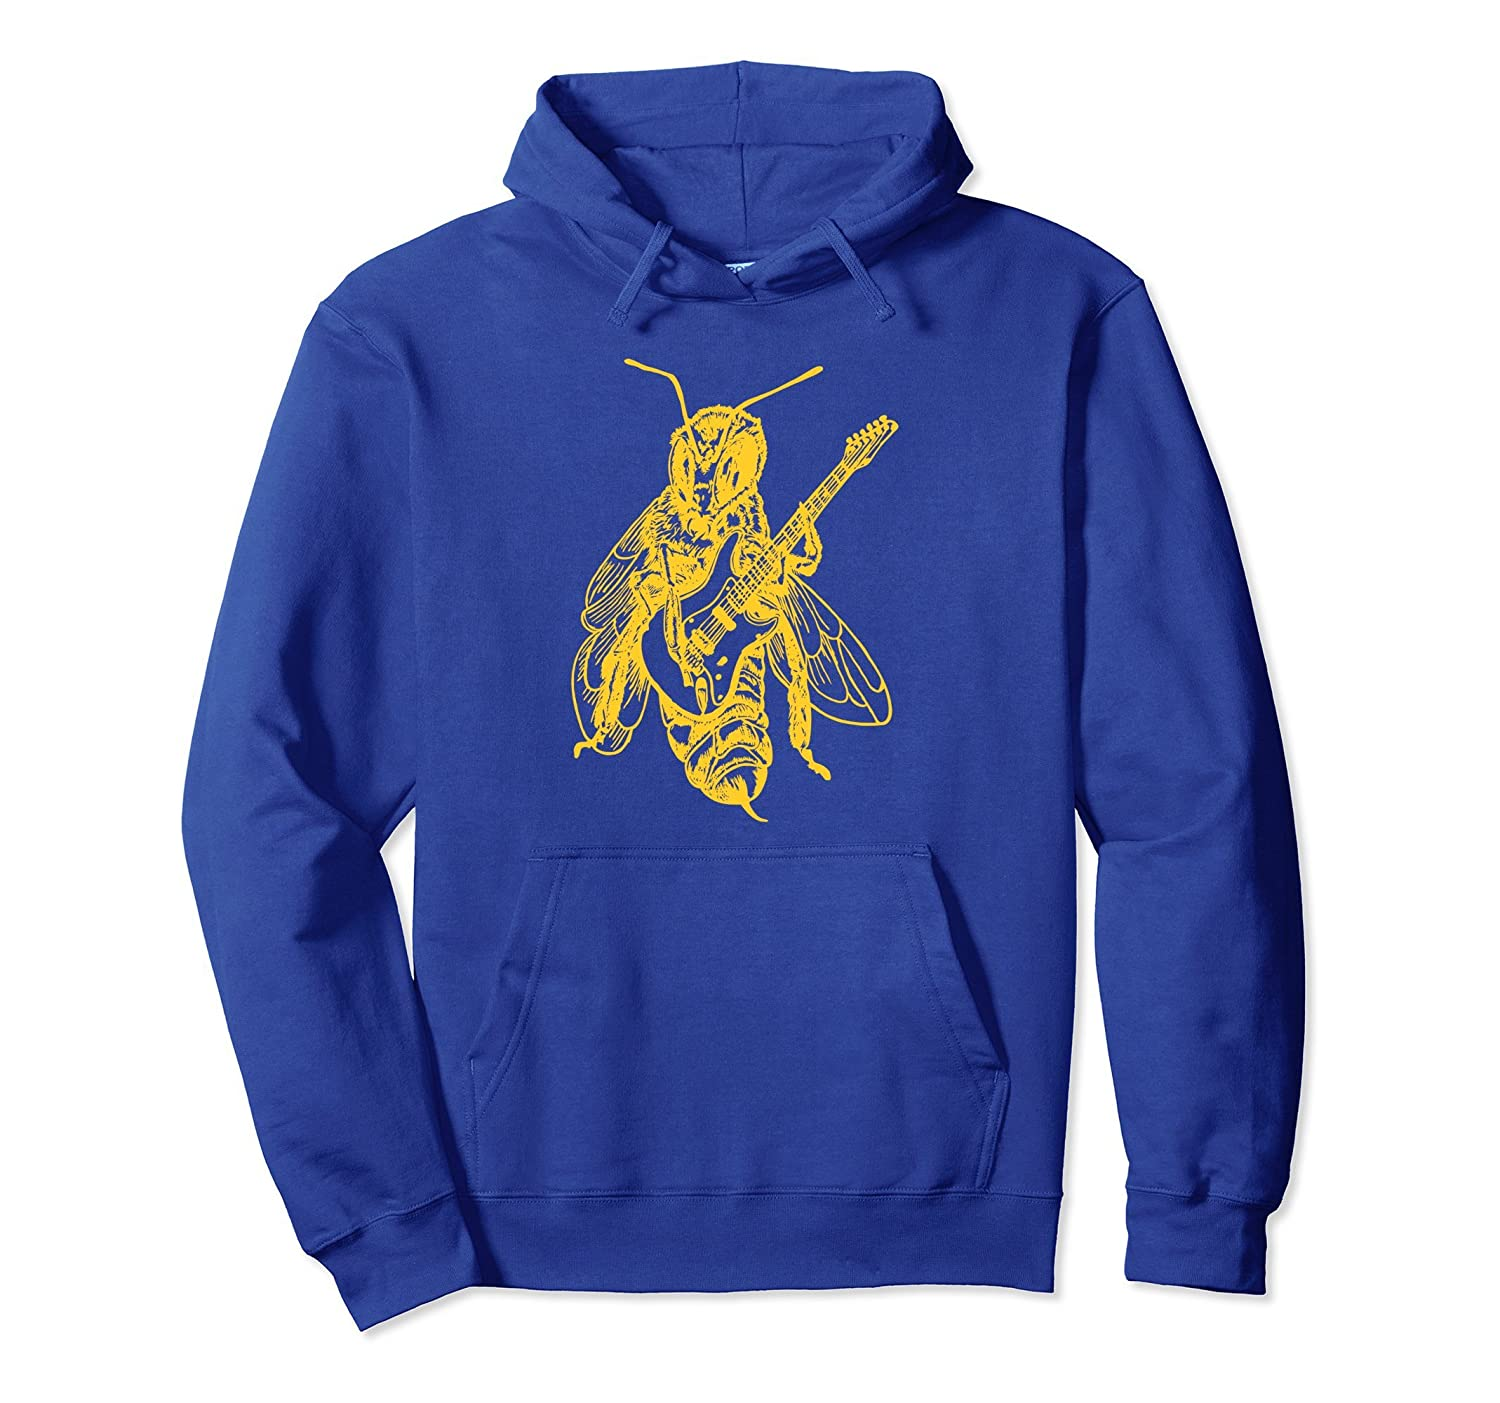 SEEMBO Bee Playing Guitar Pullover Guitaris Hoodie Gift-AZP